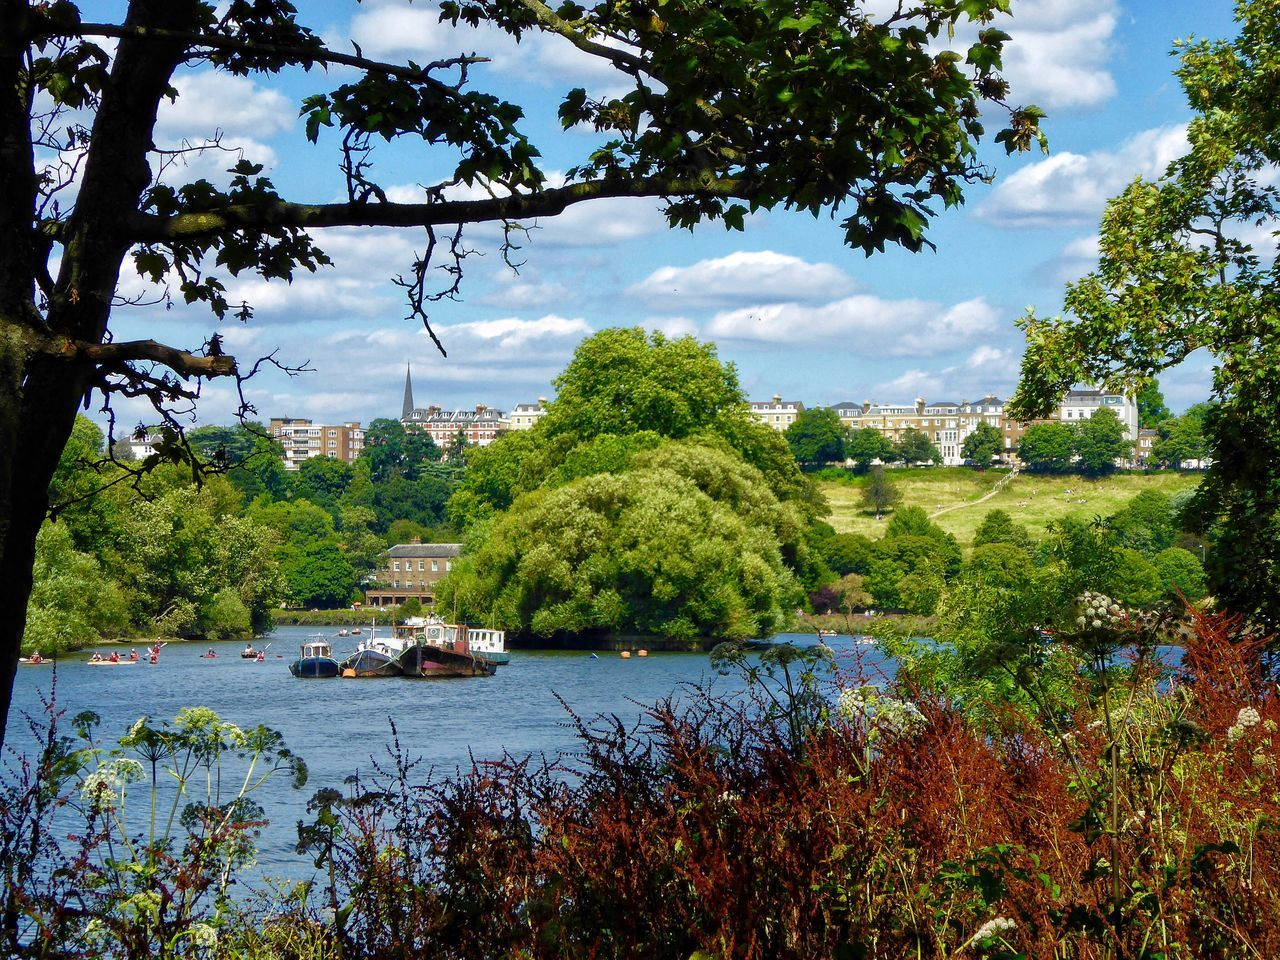 London LONDON❤ Thames Thames River Thamesriver River Riverside Riverscape River Thames Ham Petersham View of Richmond Upon Thames Landscape Landscape_Collection Landscape_photography